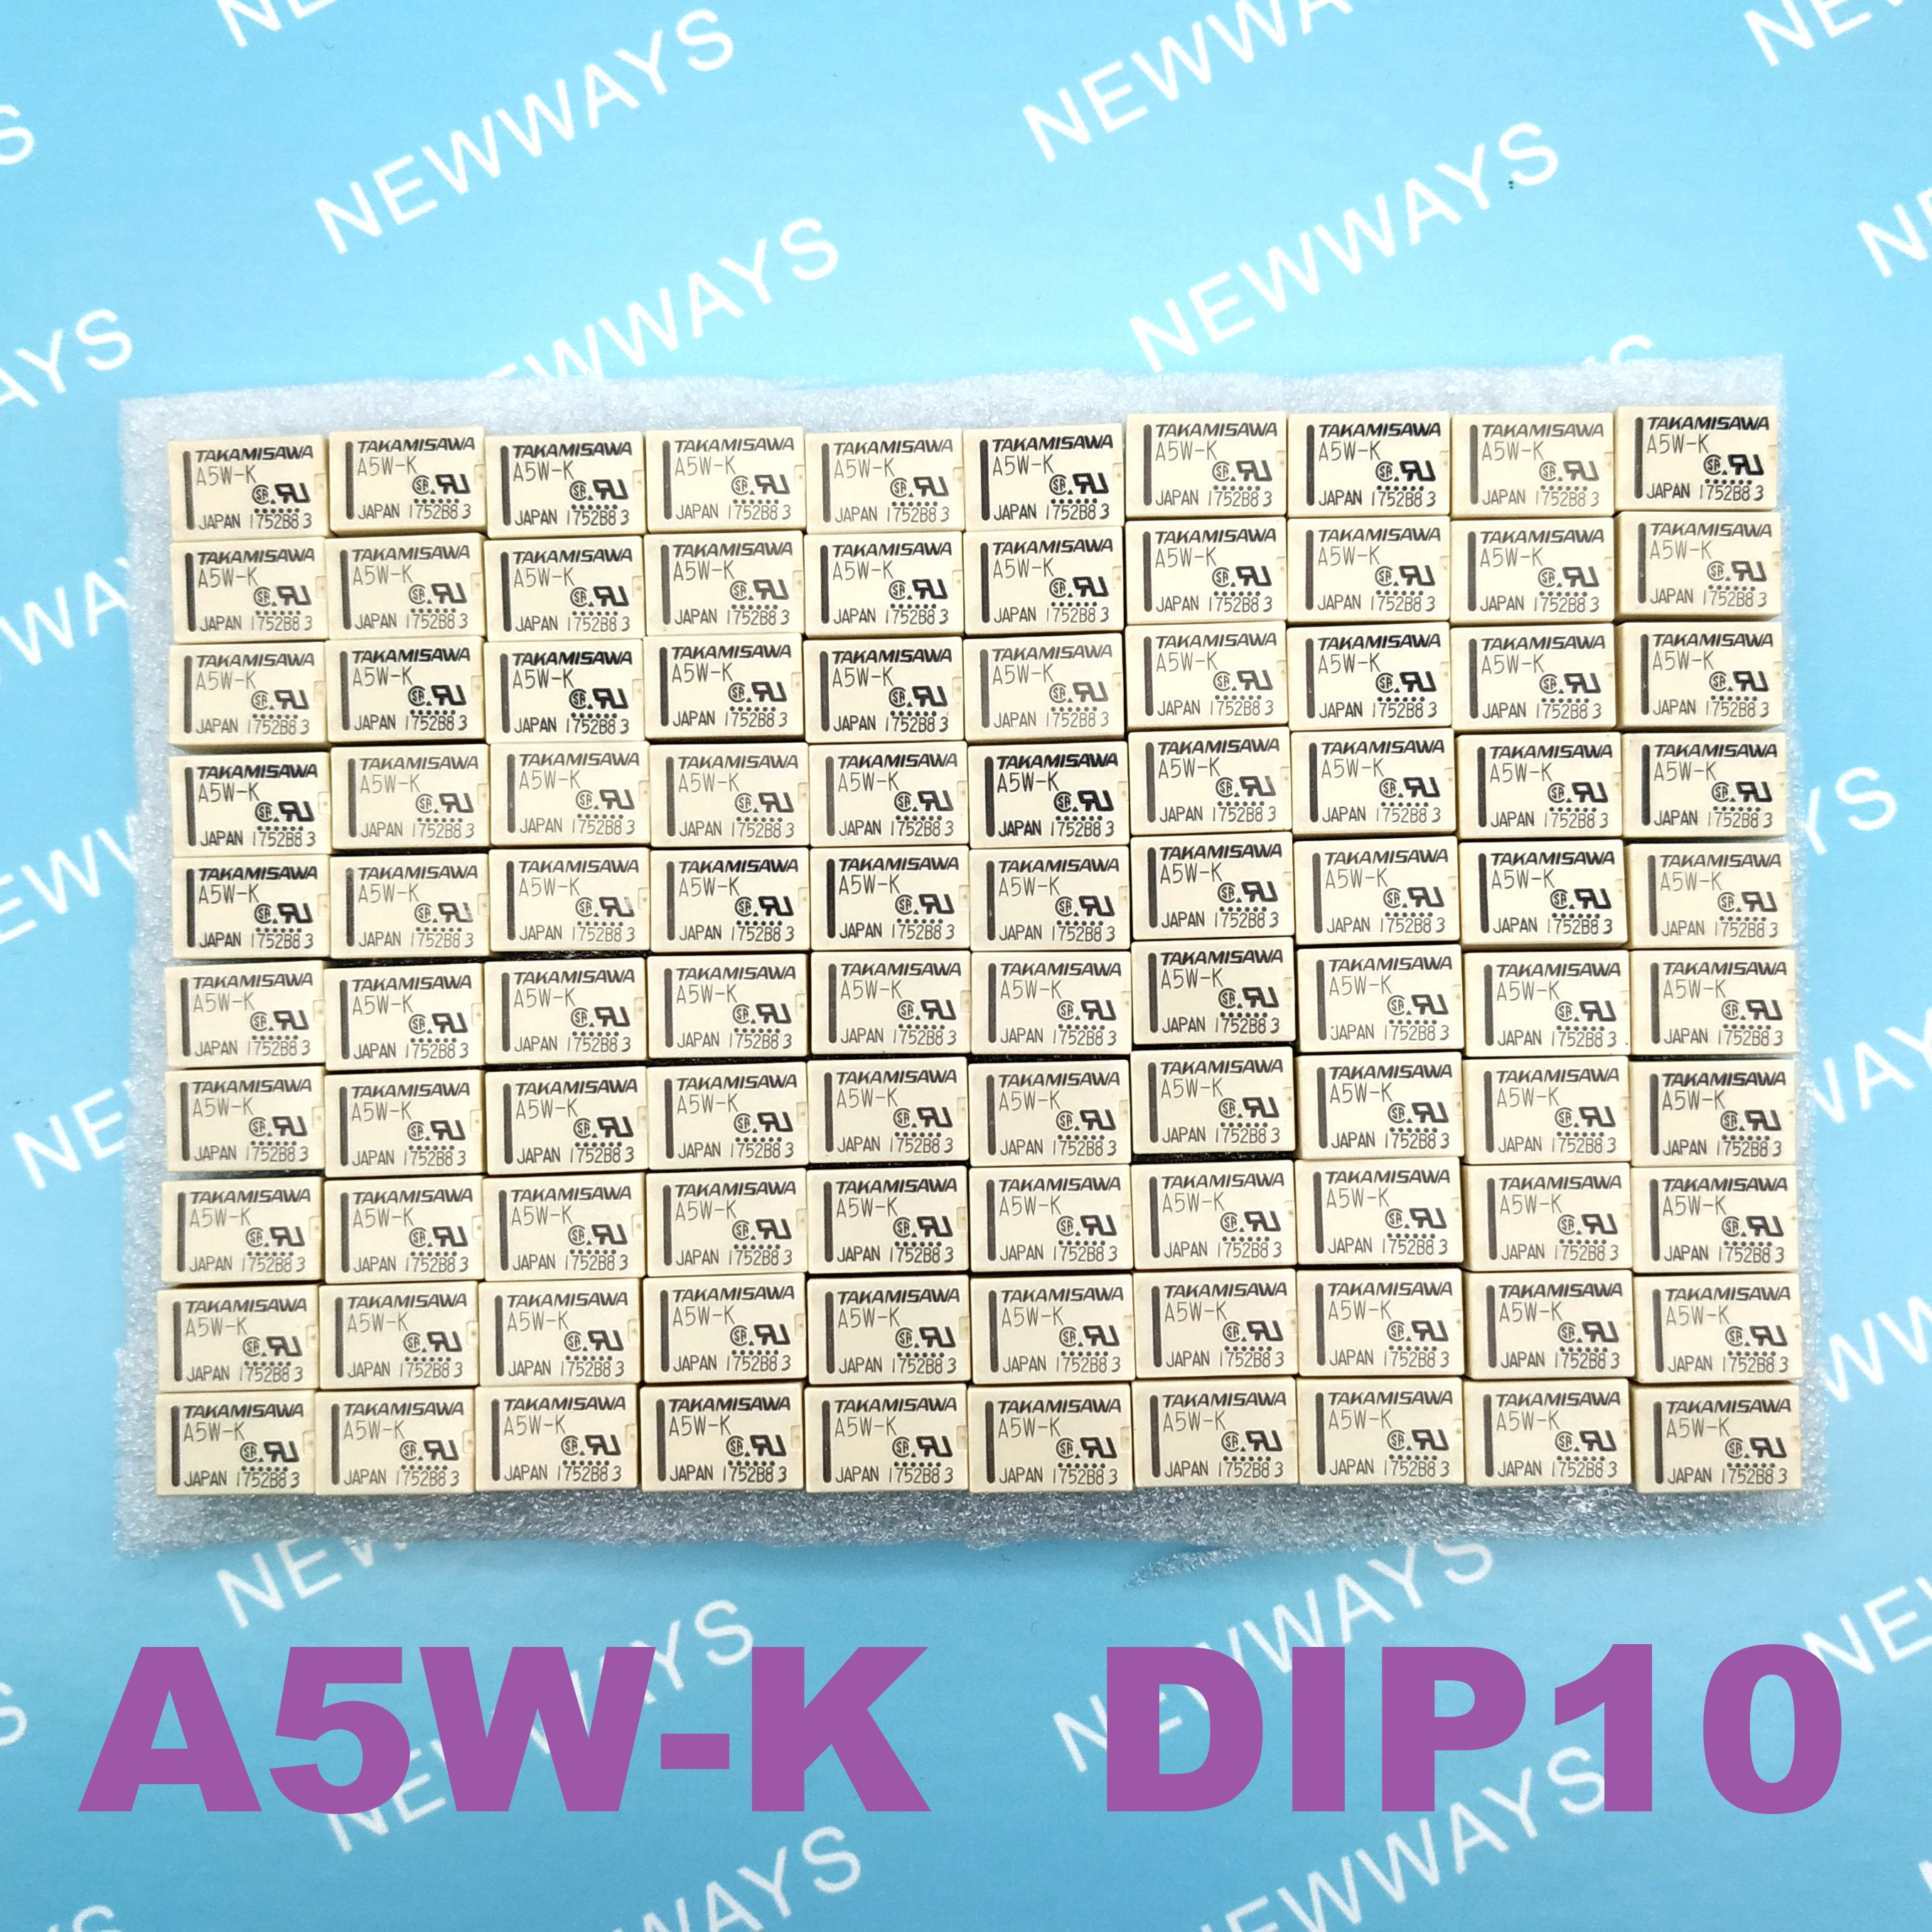 100PCS LOT Relay A5W K DIP10 Electromechanical Relay DPDT 2A 5VDC 178Ohm Through Hole New and